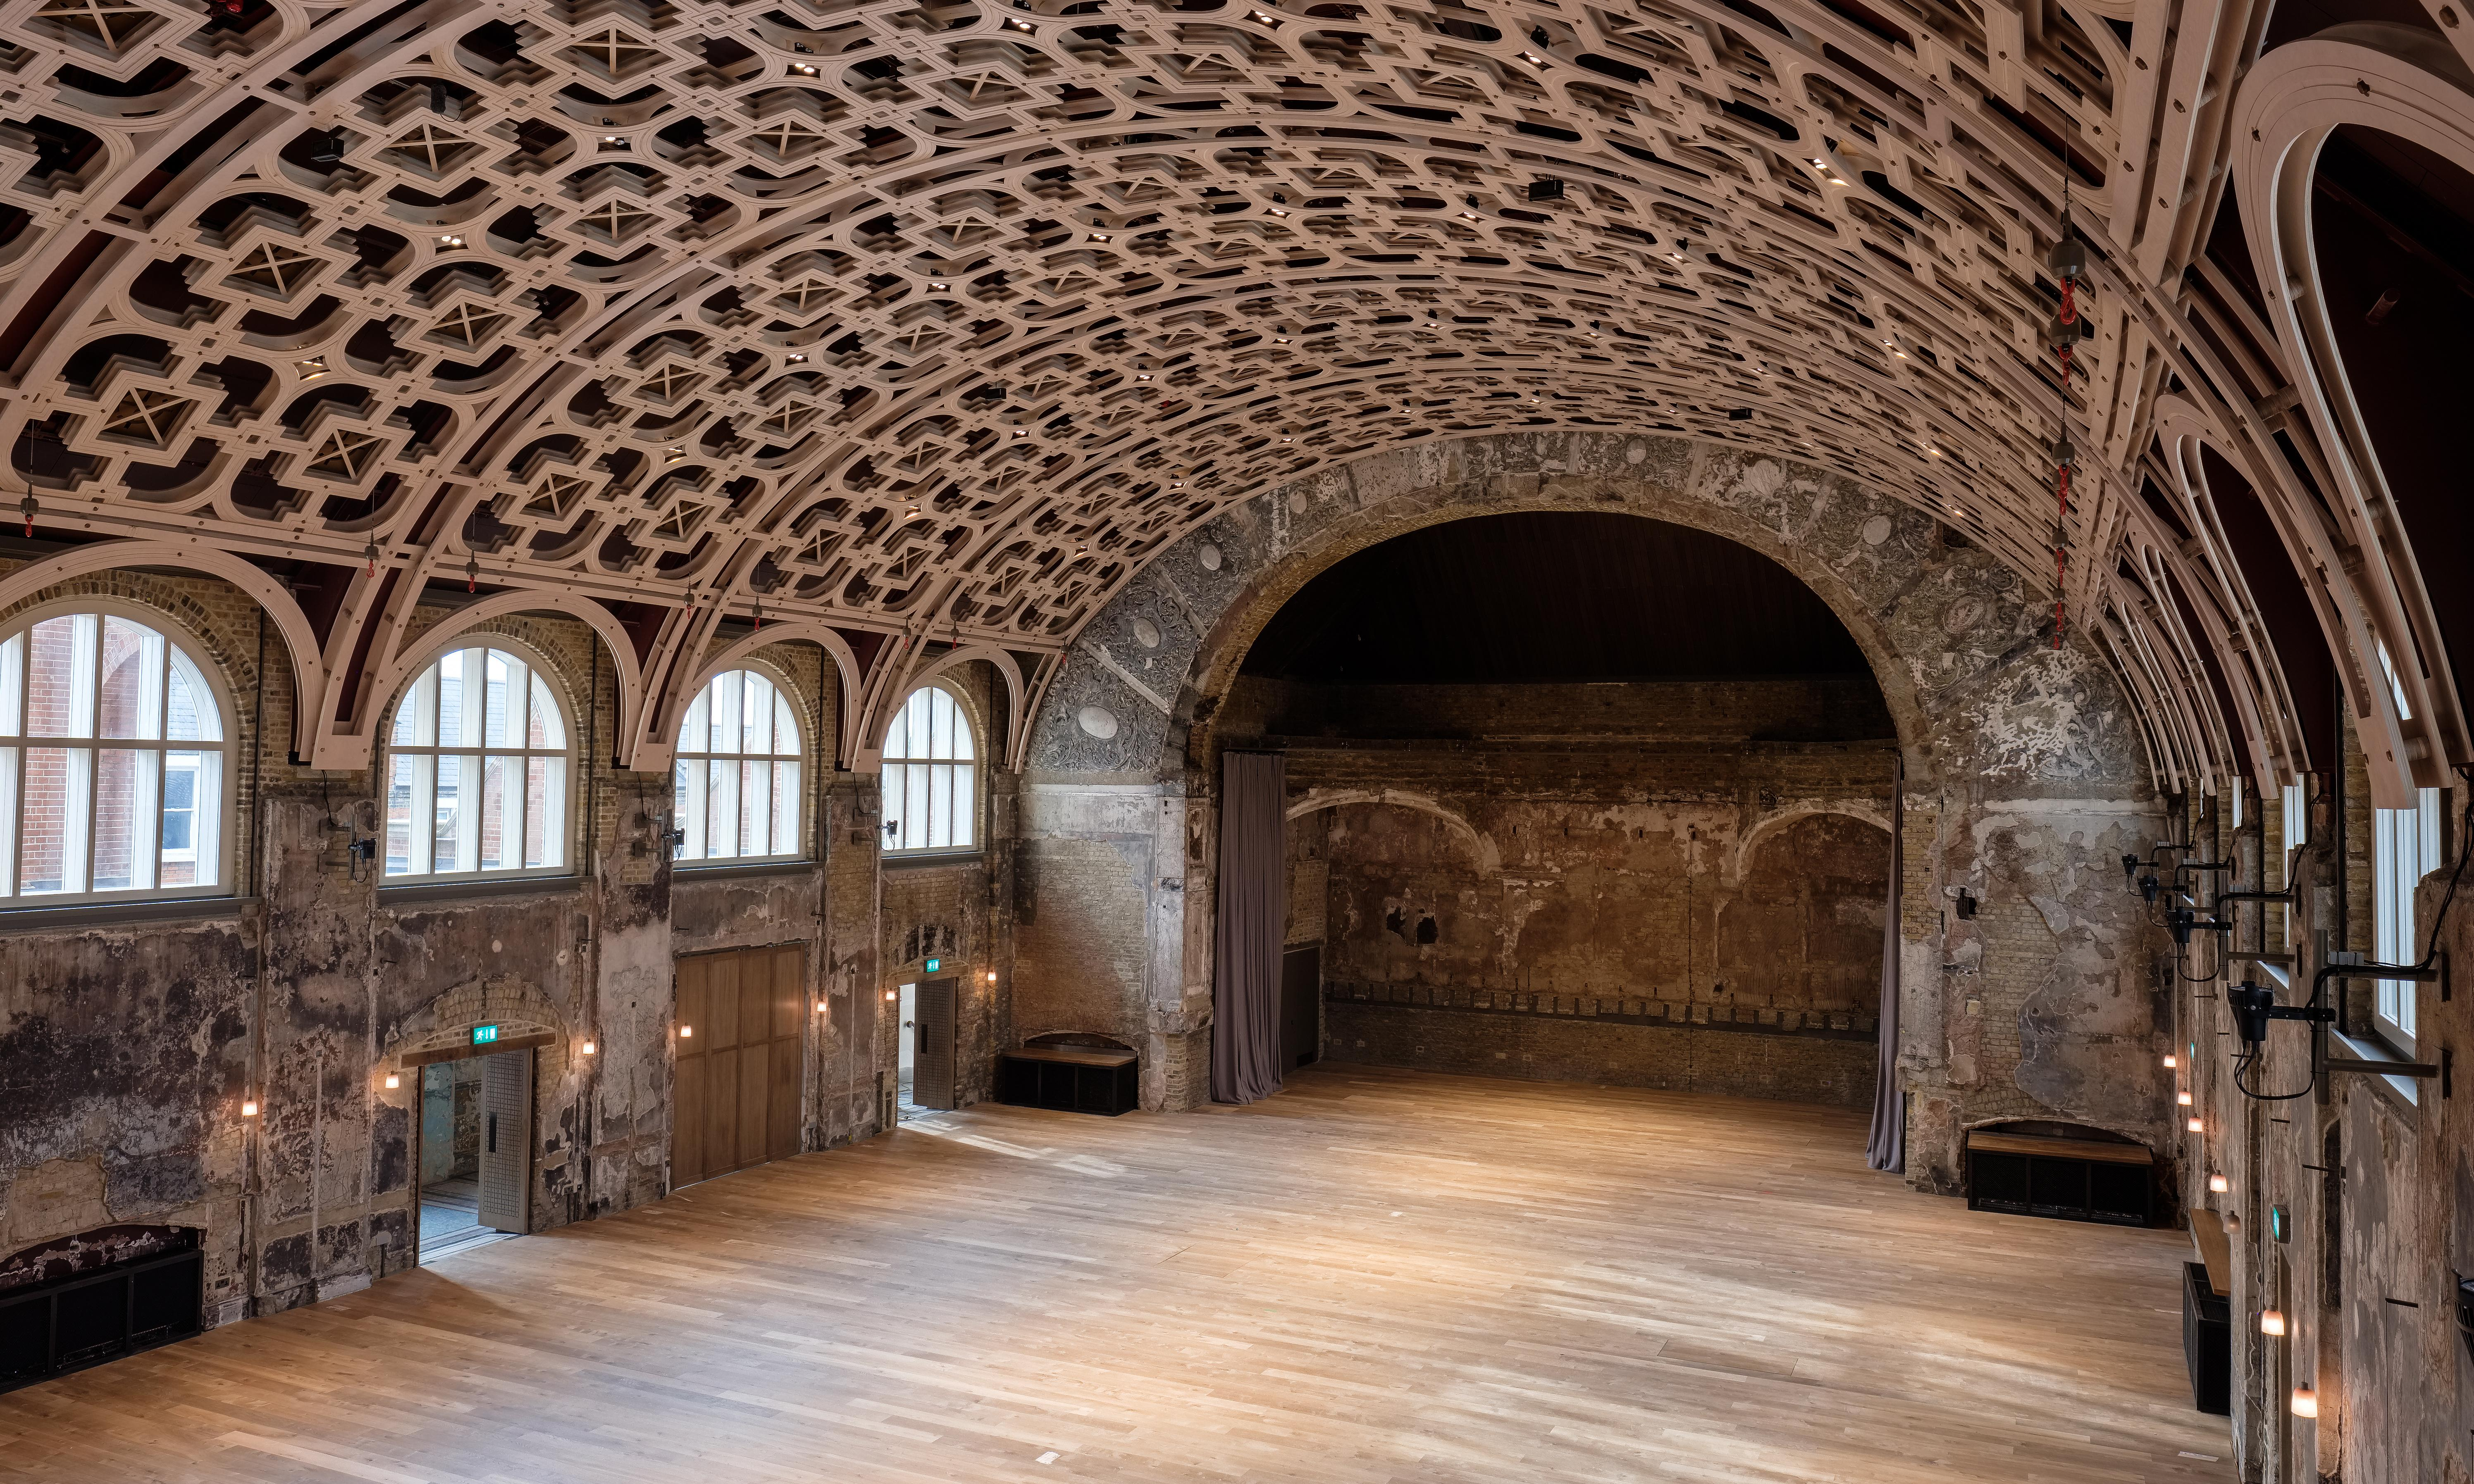 'Like something from Pompeii' – Battersea Arts Centre's scorching resurrection